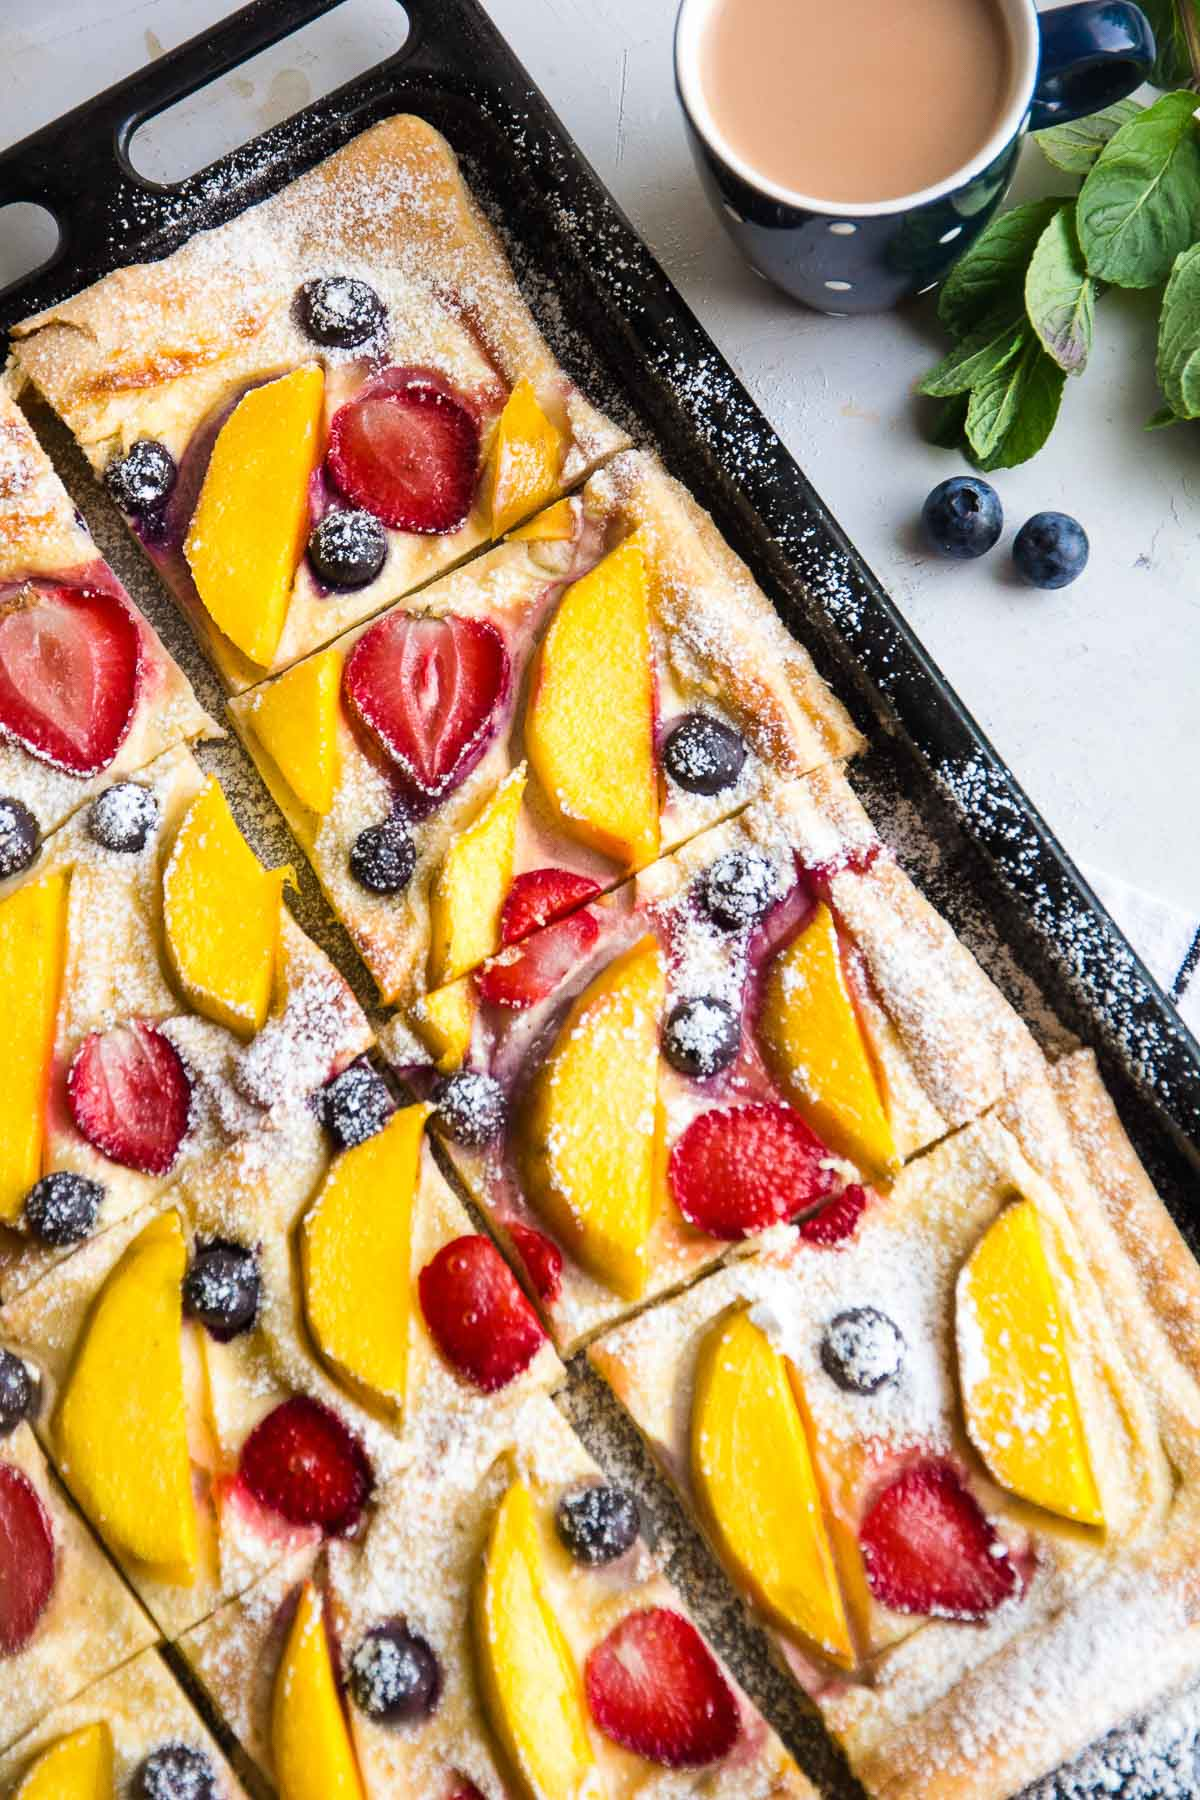 A tray of a freshly baked vegan fruit tart recipe with slices of mangoes, strawberries, and blueberries.